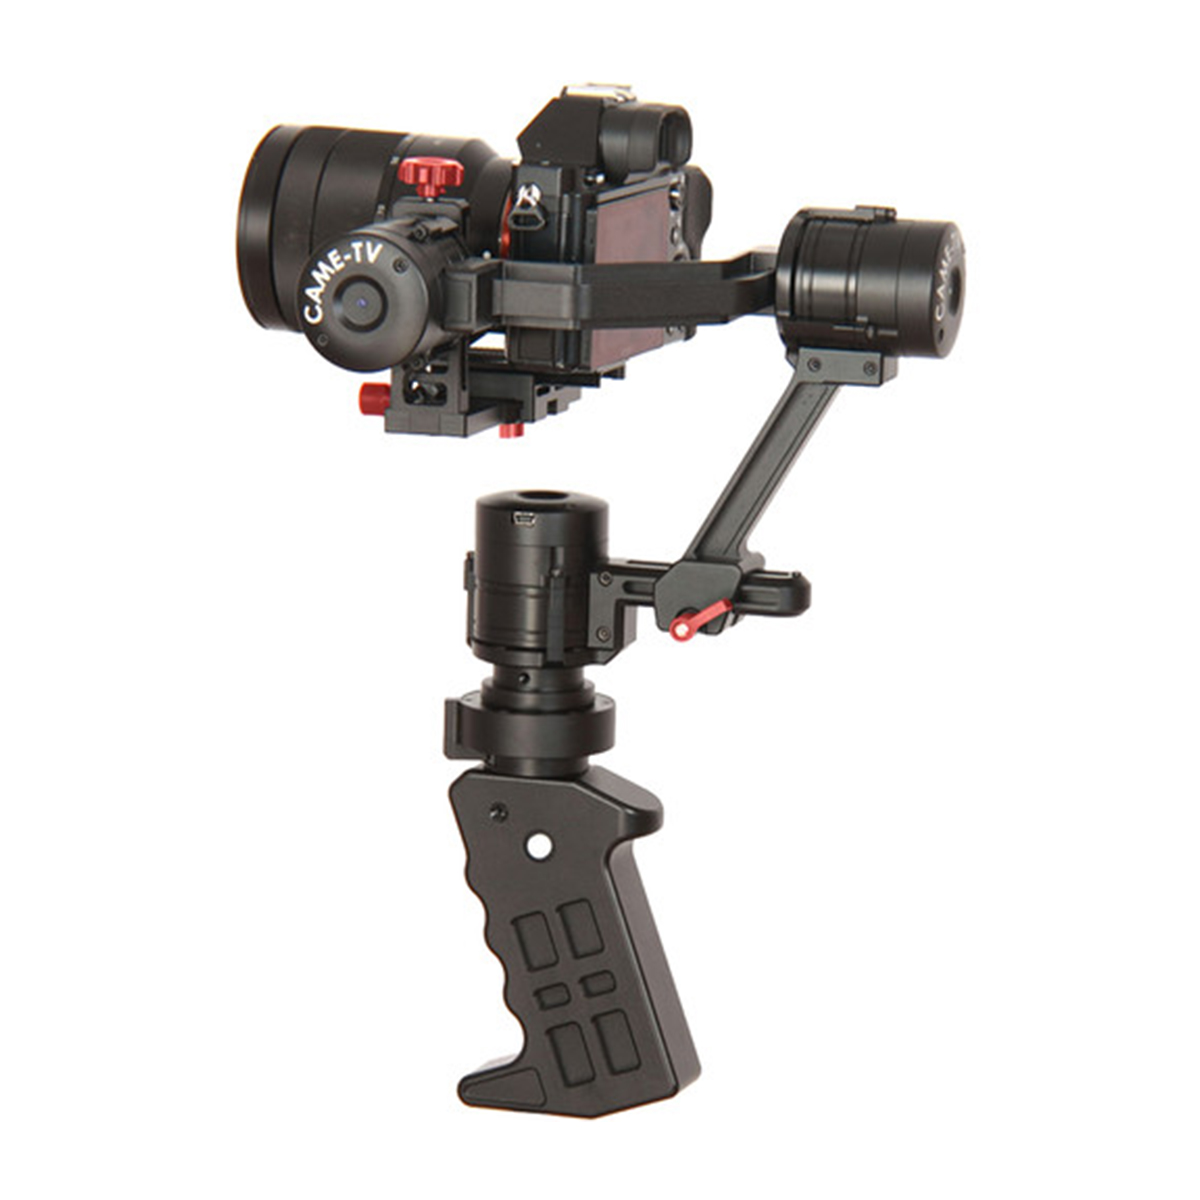 axis singles Enjoy the lowest prices and best selection of axis single drum pedals at guitar center most orders are eligible for free shipping.